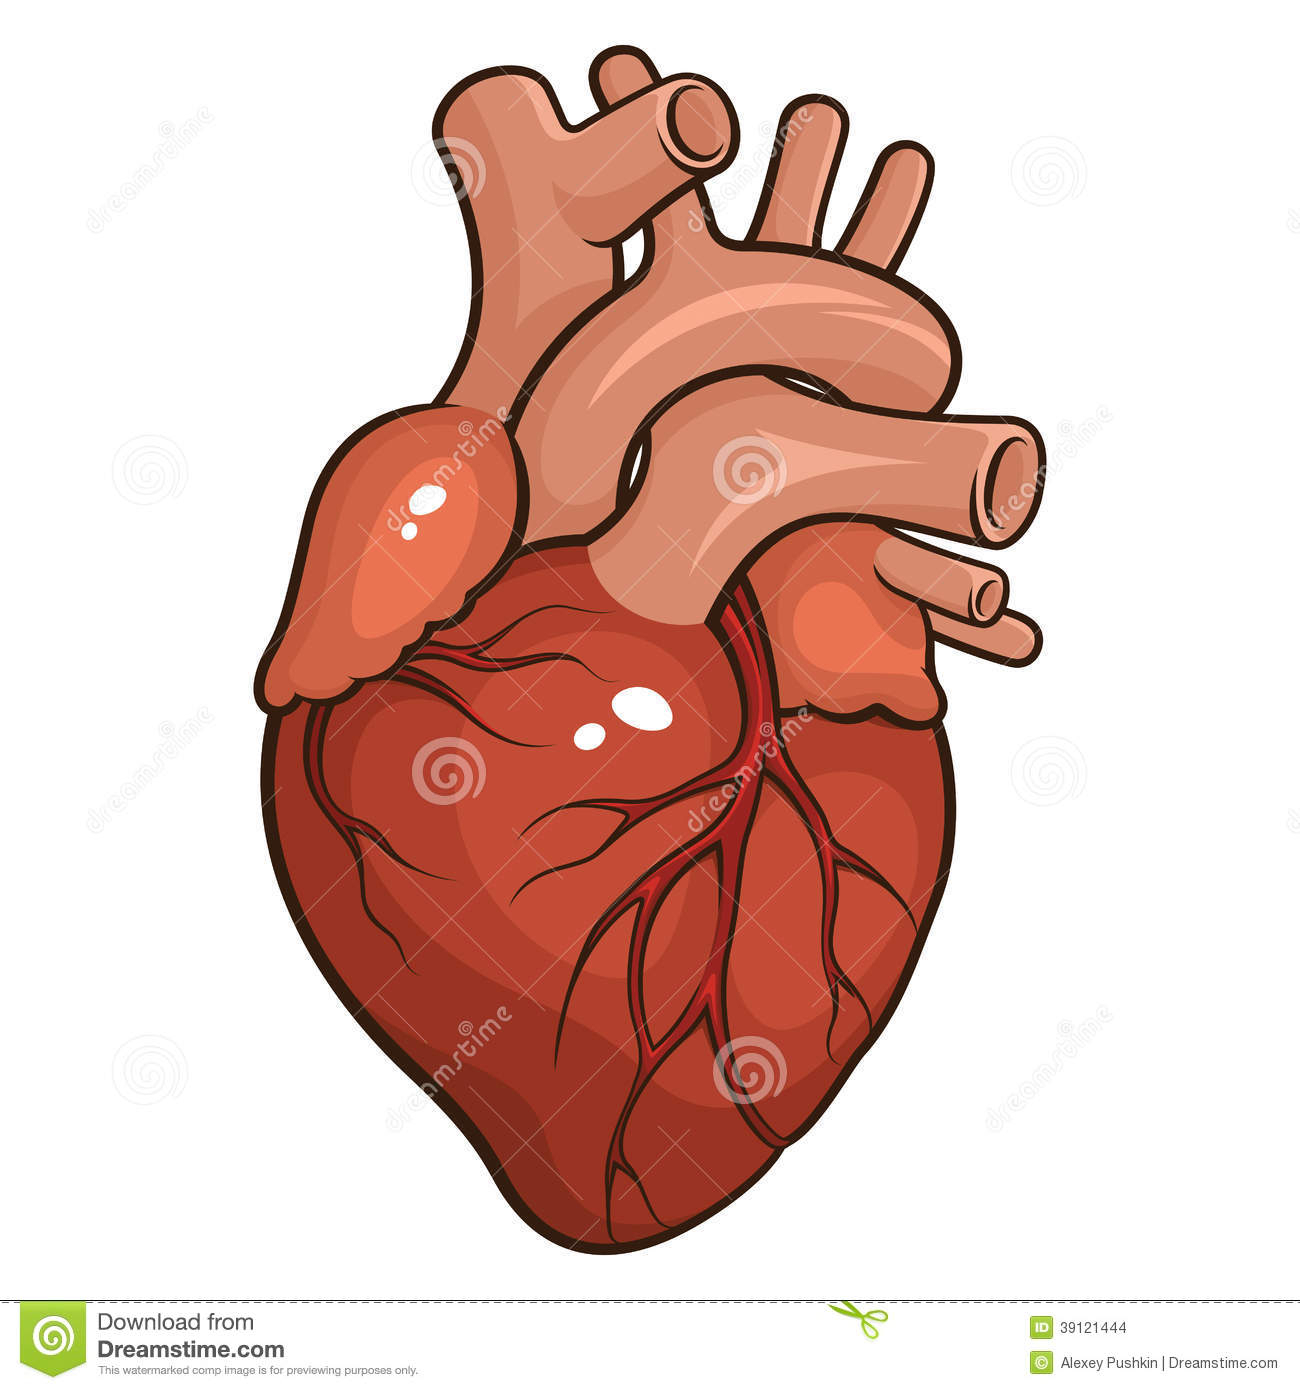 Body clipart simple human. Heart drawing images at